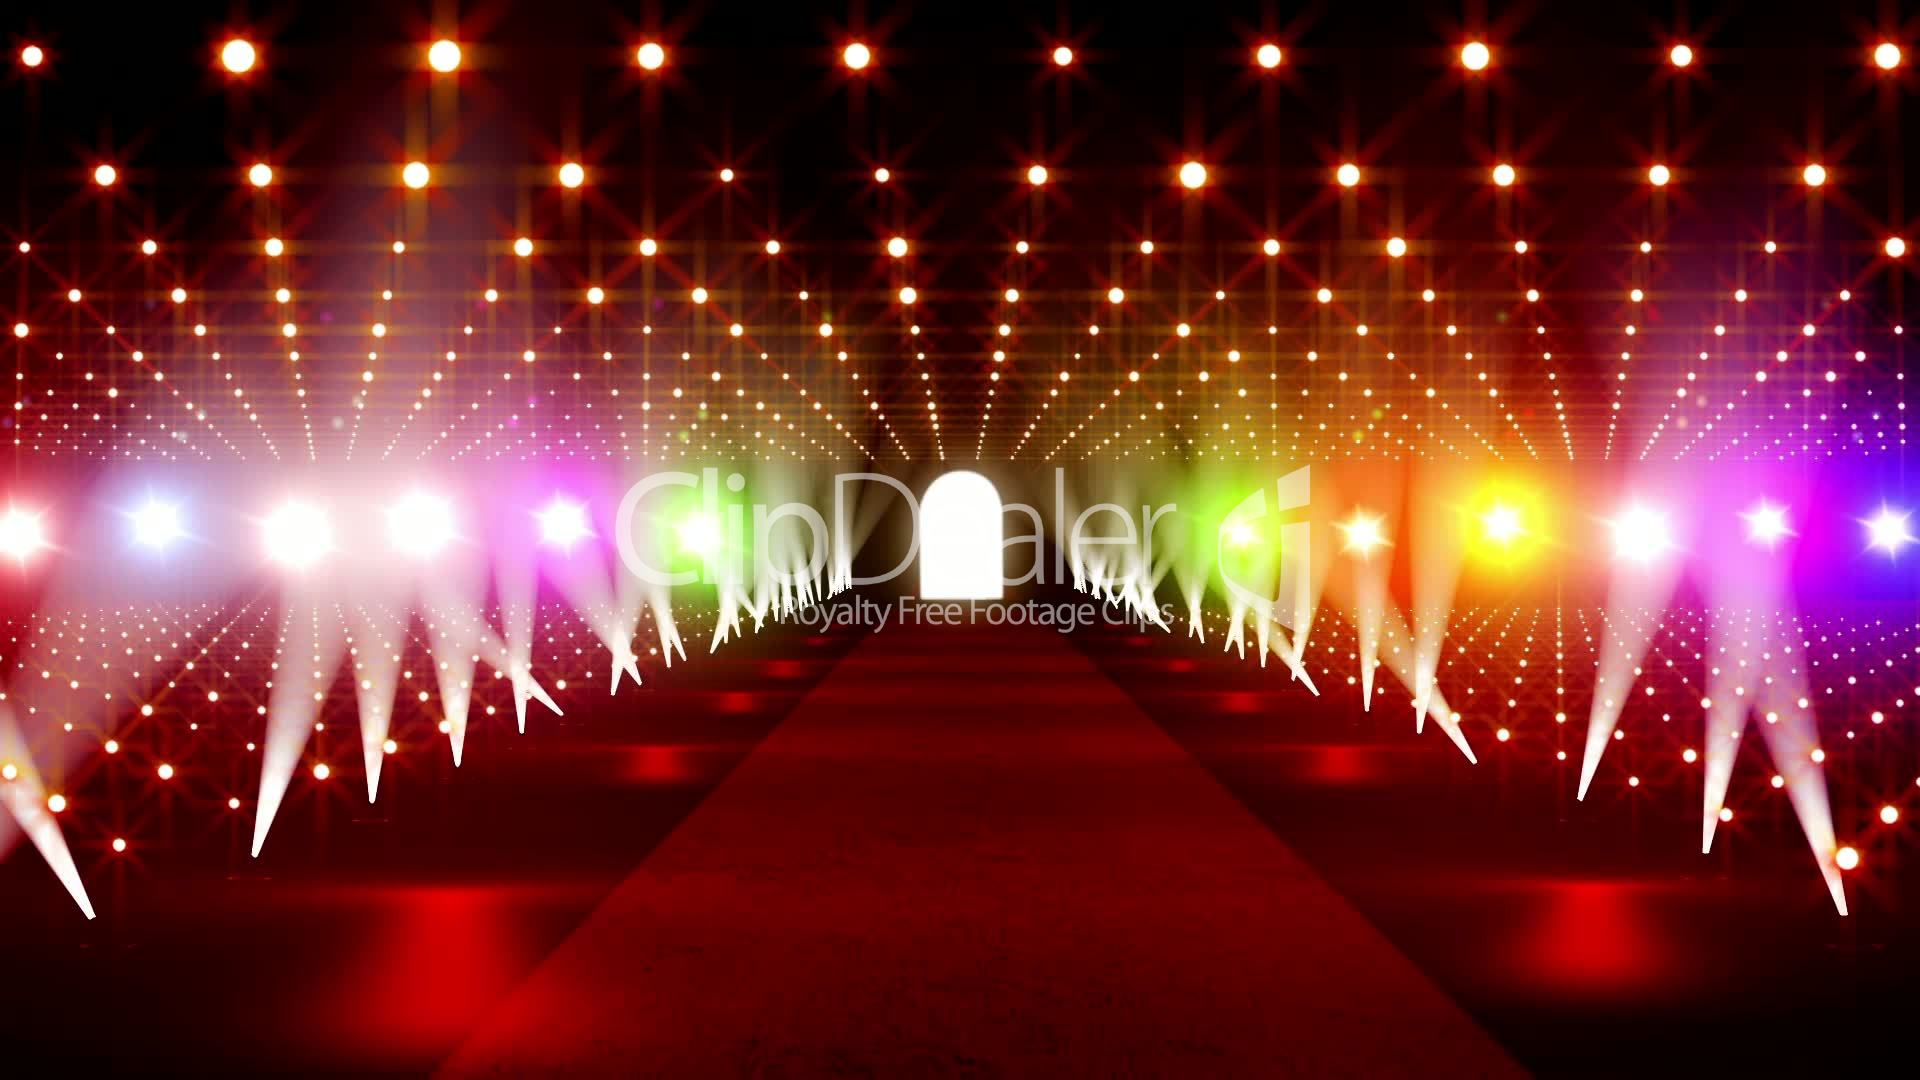 Hollywood Party Invitations additionally Red Carpet Entrance With Red Light Burst Over Curtain Image 4564985 in addition Red Carpet Invitation Hollywood Party also Mefnc 2016 Gala Event Update likewise Old Hollywood Art Deco Red Carpet Gold. on oscar night party theme templates